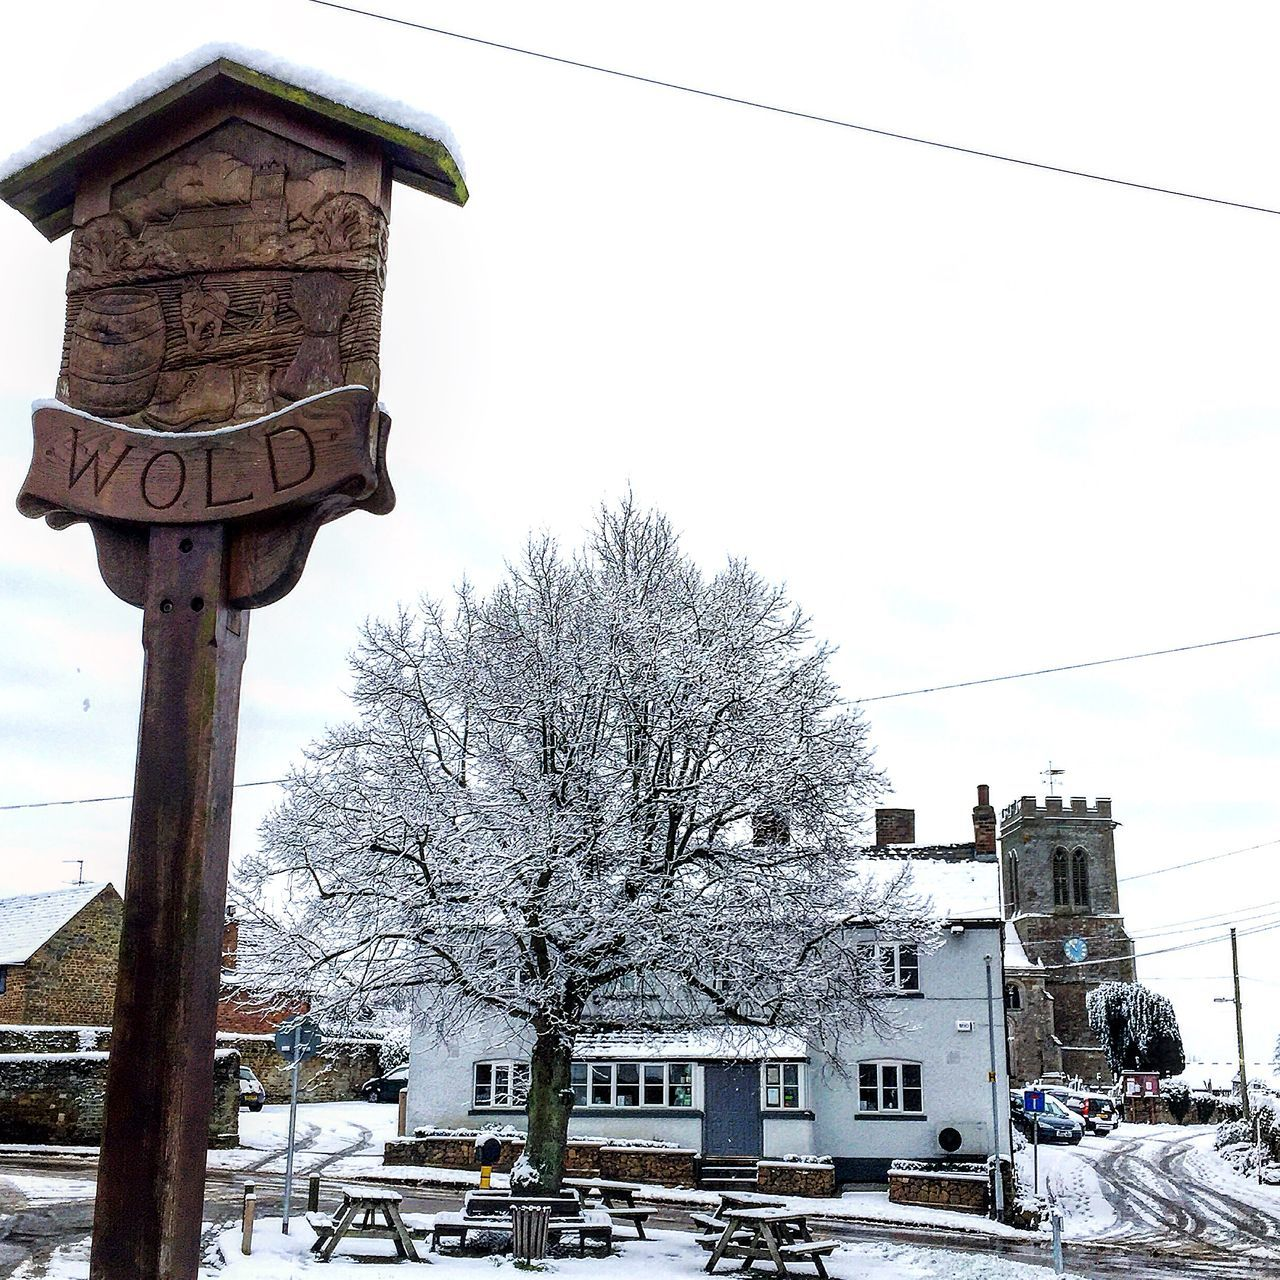 Wold village in Northamptonshire Old Wold Village Pub Church Sign Green Northamptonshire Northampton Pubs Northampton Northants Uk United Kingdom Snow Snowy Snow ❄ Snow Covered